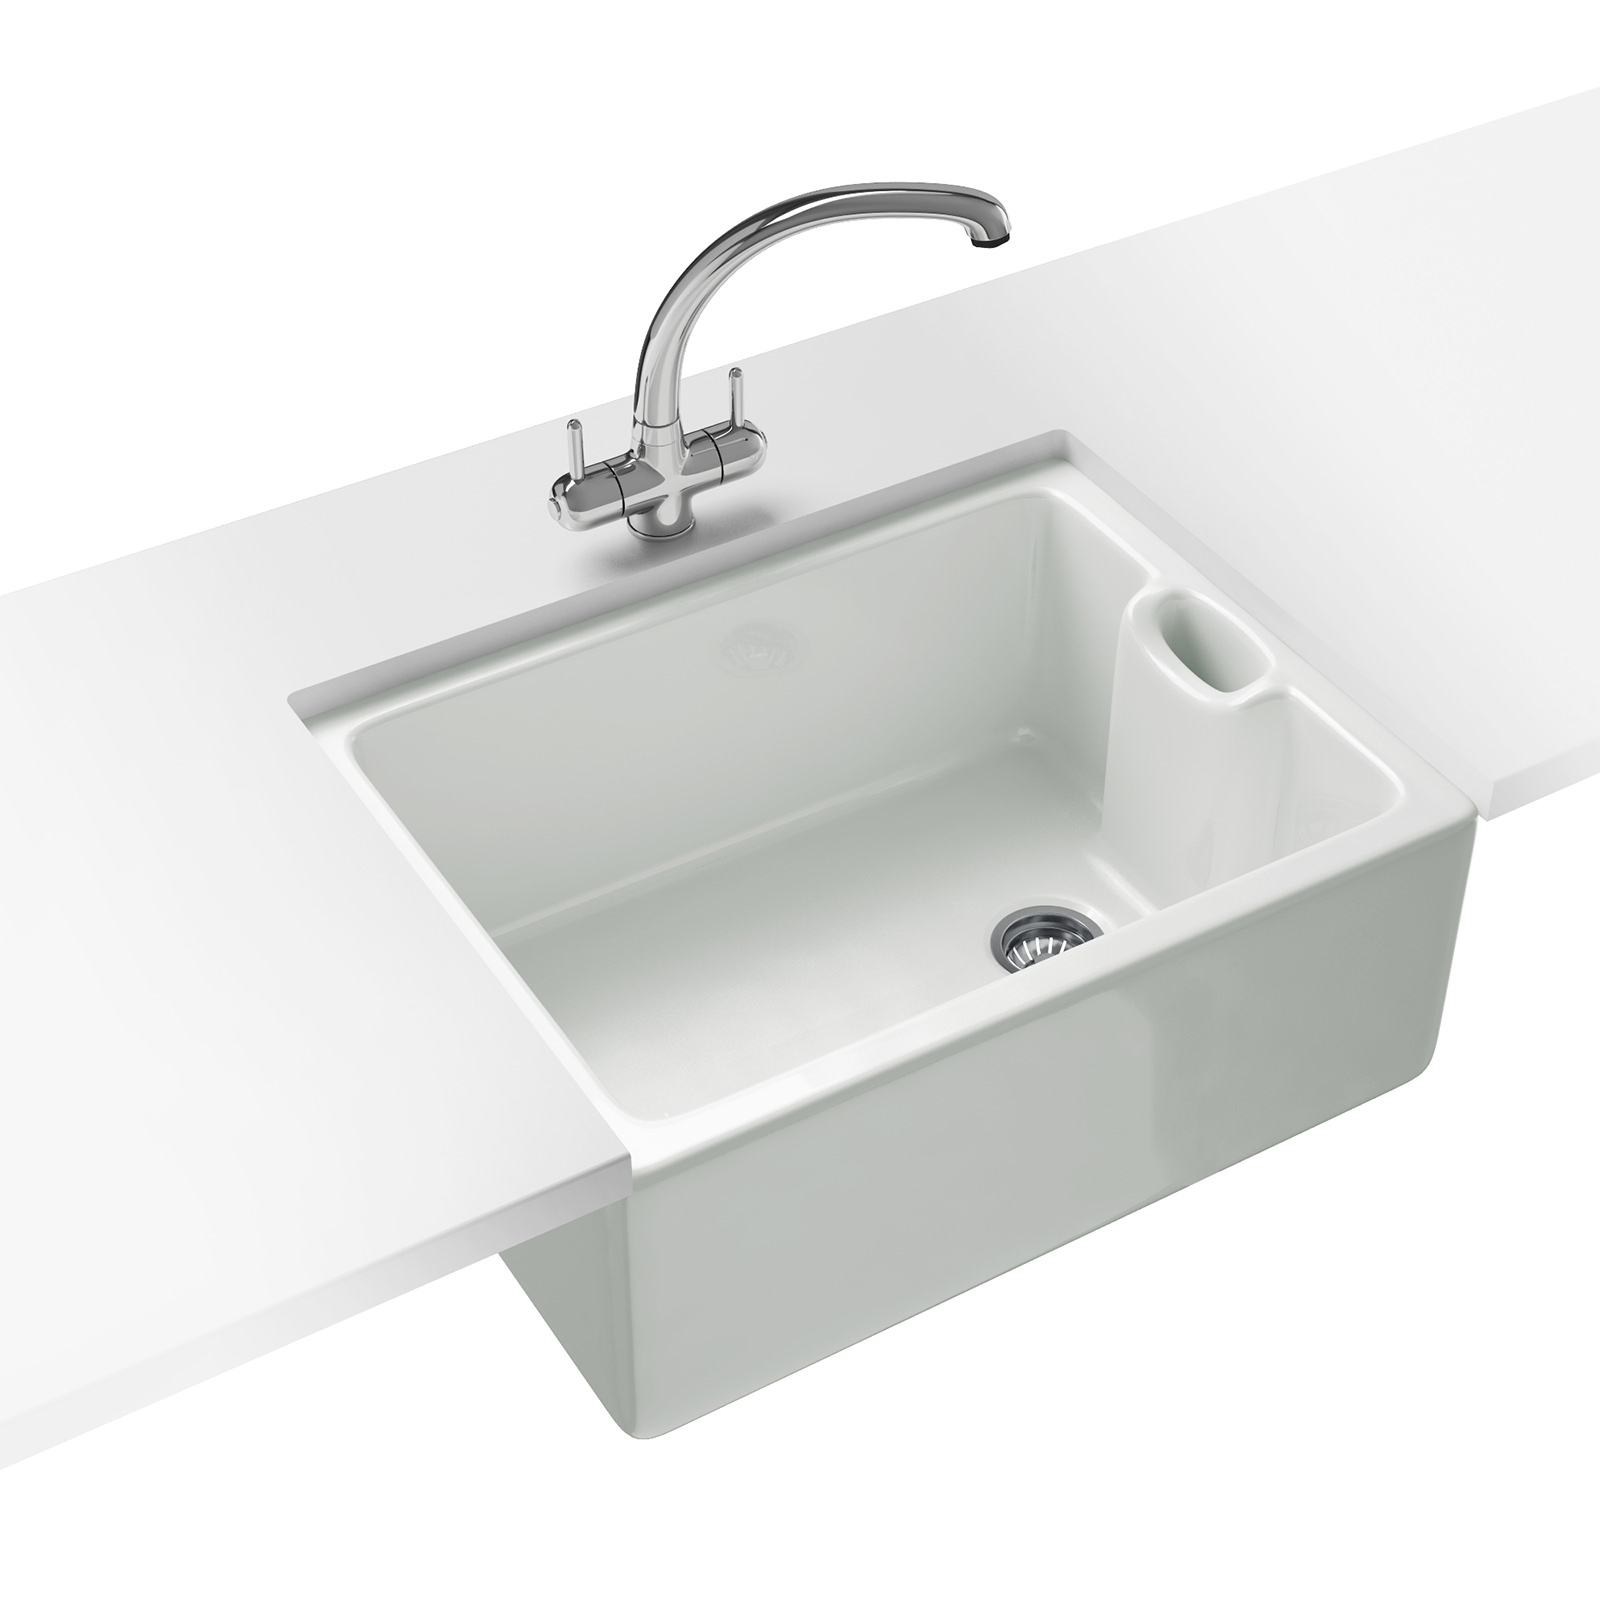 Franke Sinks And Taps : Franke Belfast Propack BAK 710 Ceramic White Kitchen Sink And Tap ...